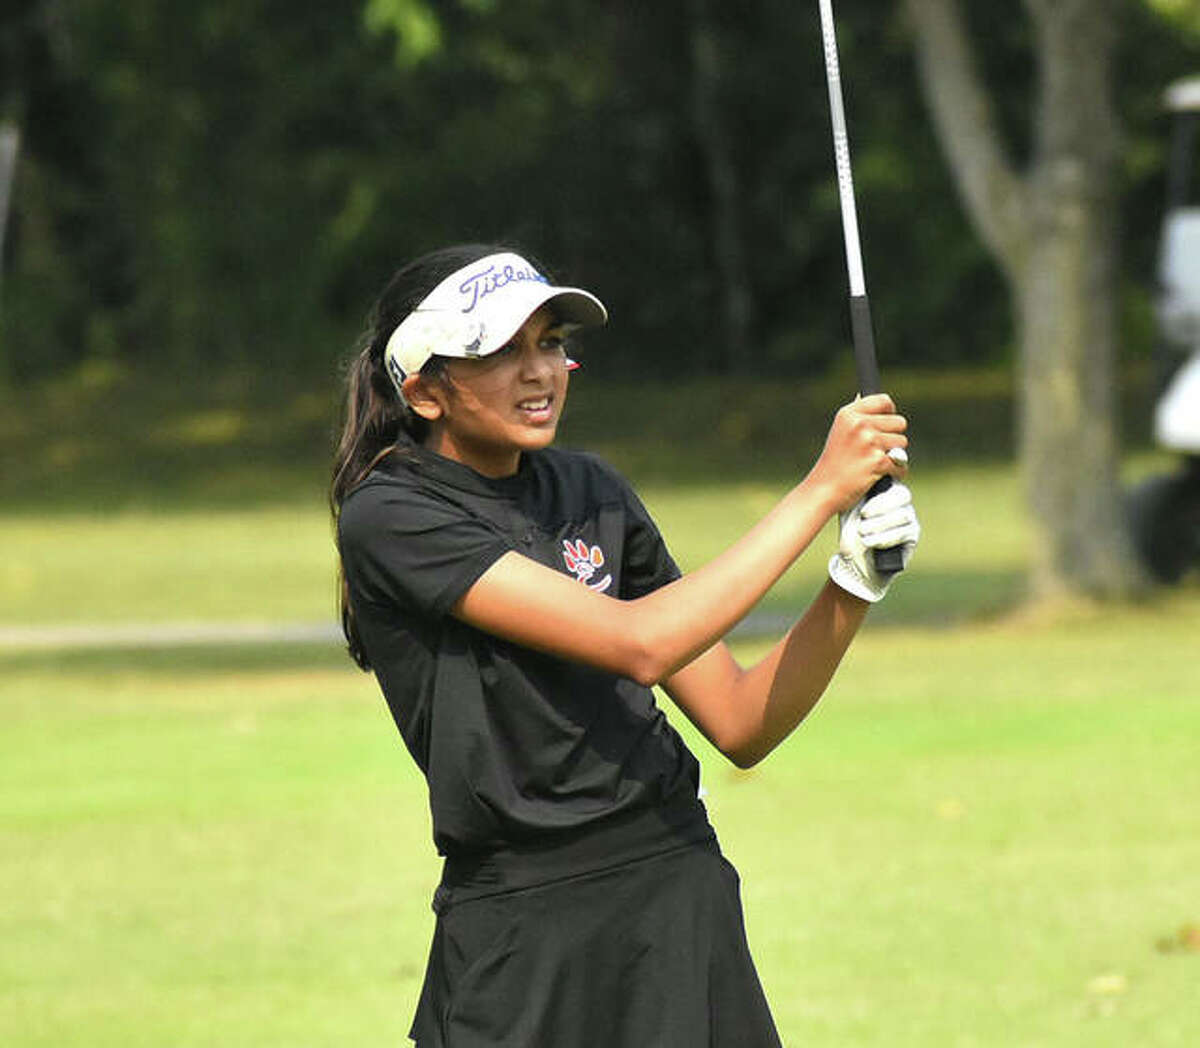 Edwardsville's Ruhee Gupchup reacts to her second shot on the third hole at Rolling Hills Golf Course during the Alton Invitational.